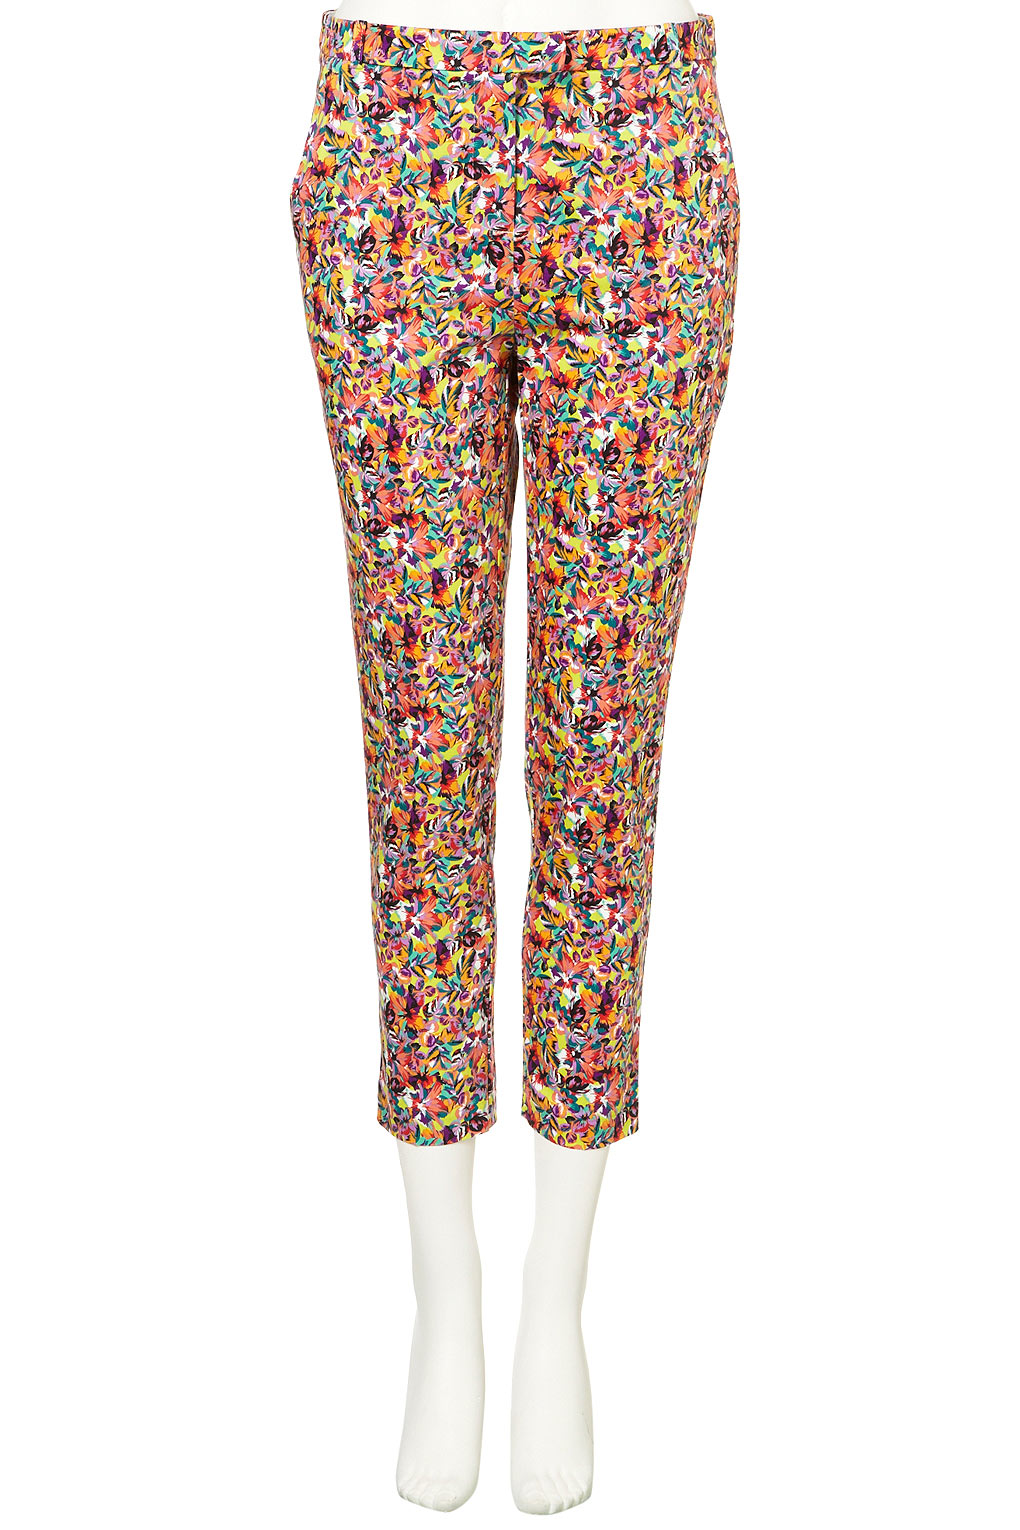 TOPSHOP £40.00 Lime Tropical Cigarette Trousers